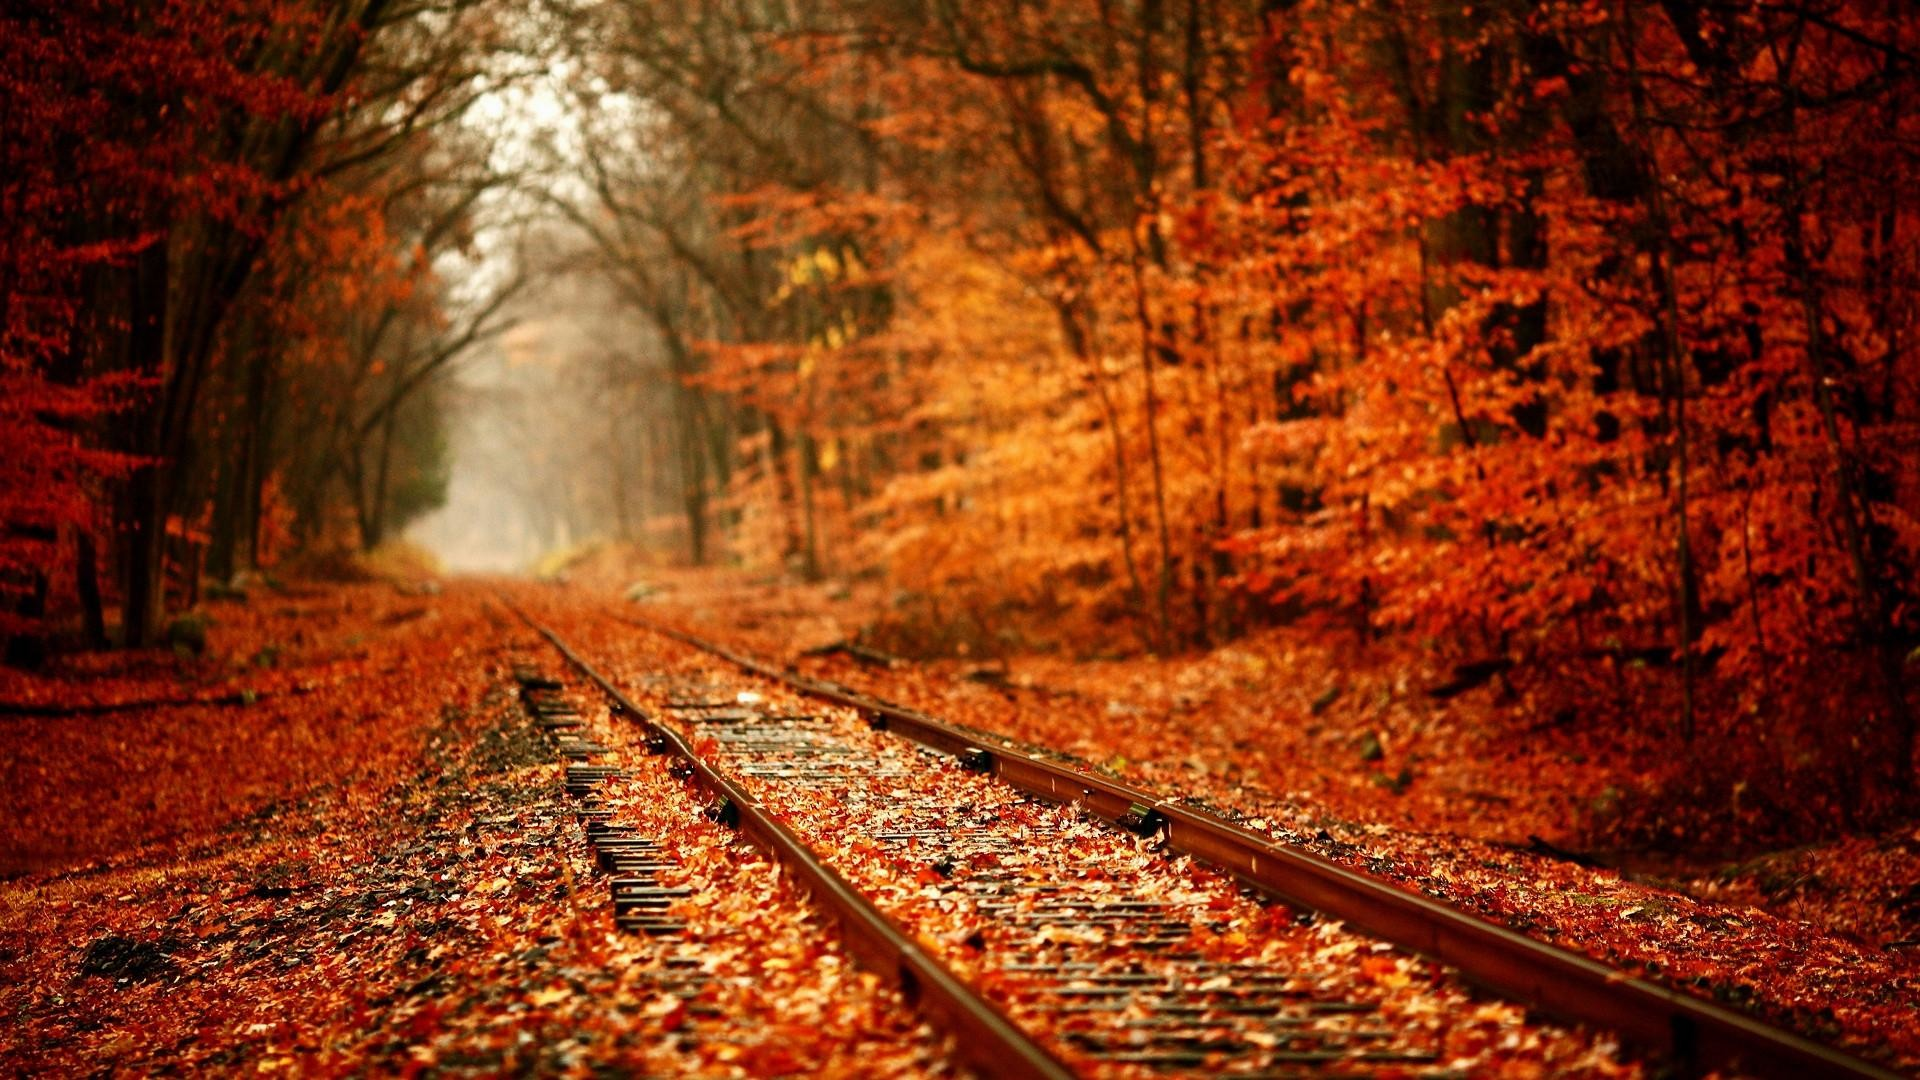 Autumn Wallpaper: 1920x1080 HD Autumn Wallpapers (61+ Images